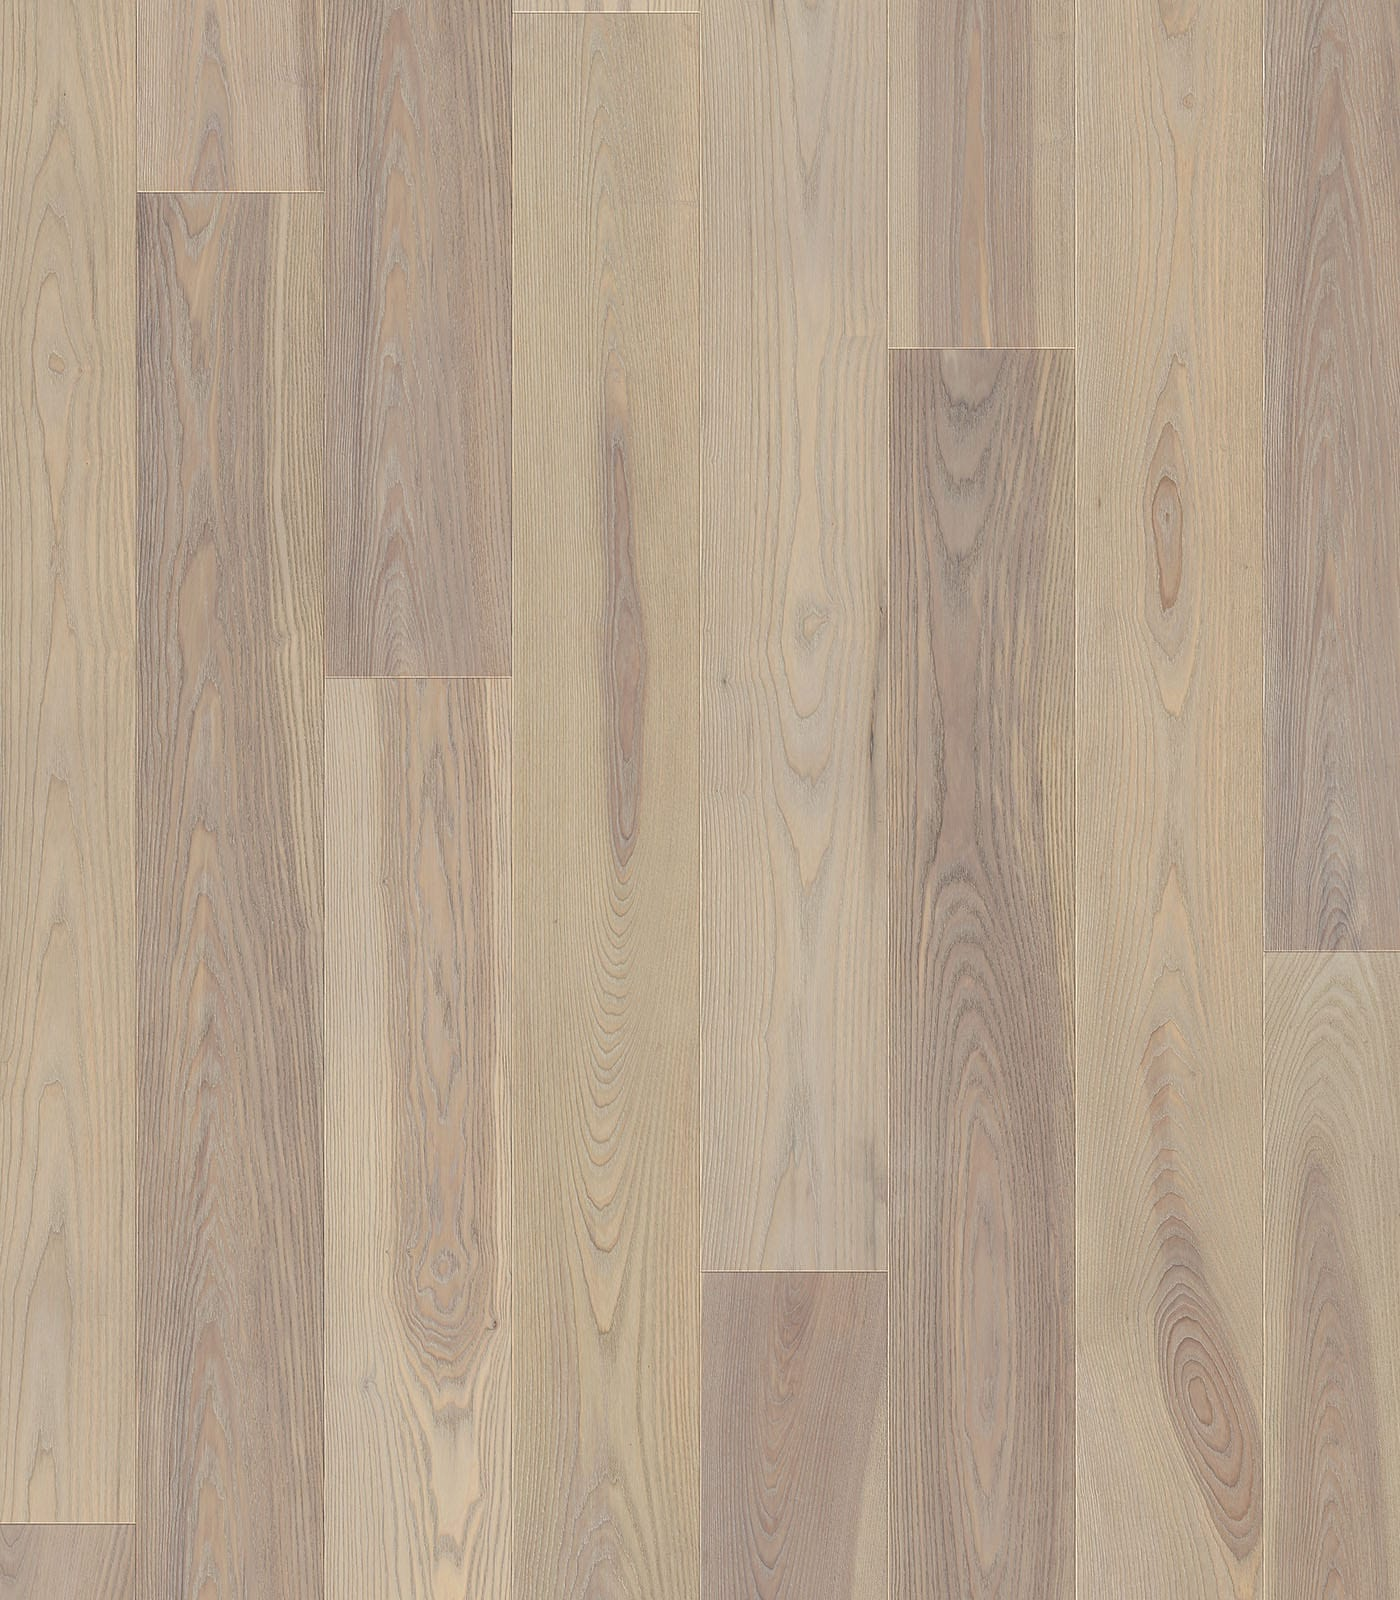 Salzburg-After Oak Collection-European Ash Floors - flat